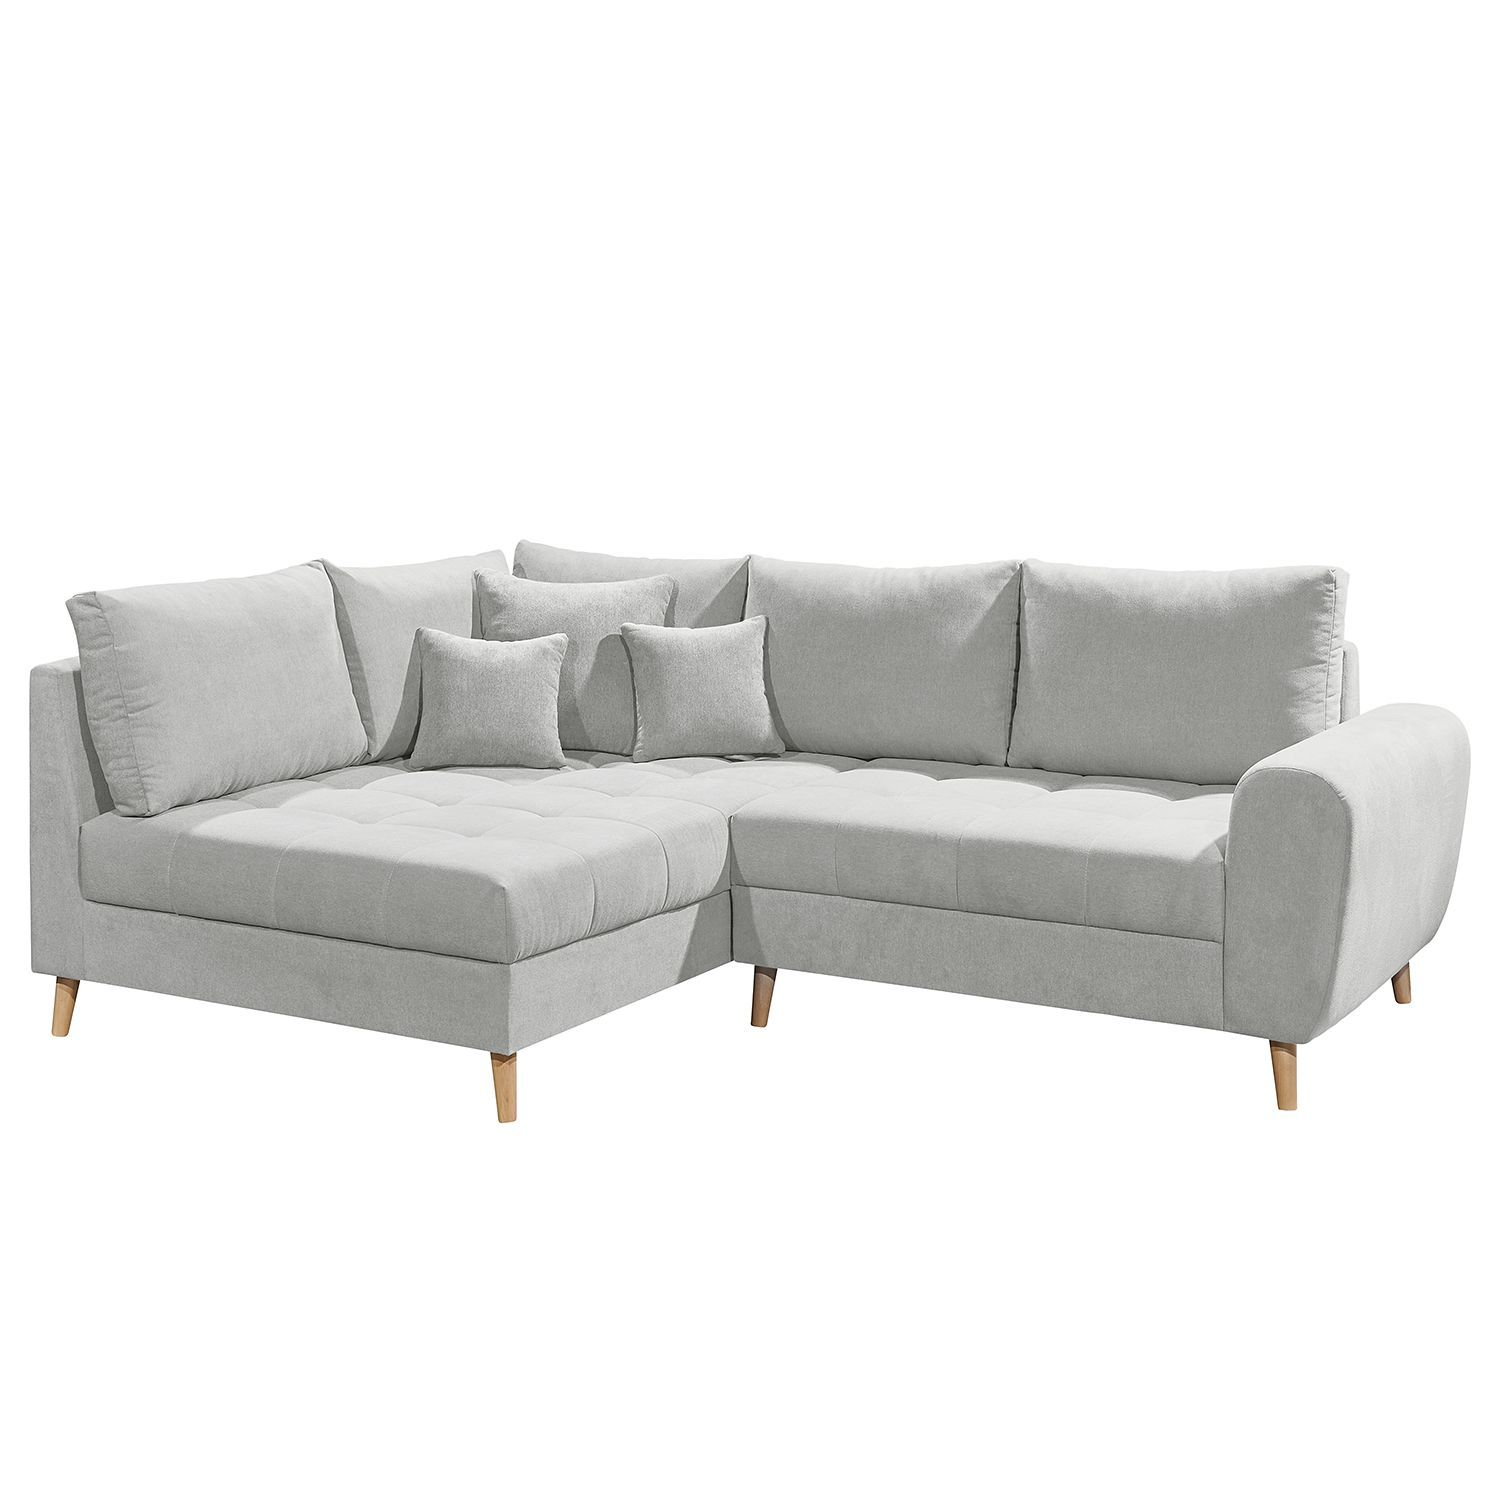 Actona Ecksofa Norwich Ecksofa Capstone Products Sofa Furniture Sofa Und Couch